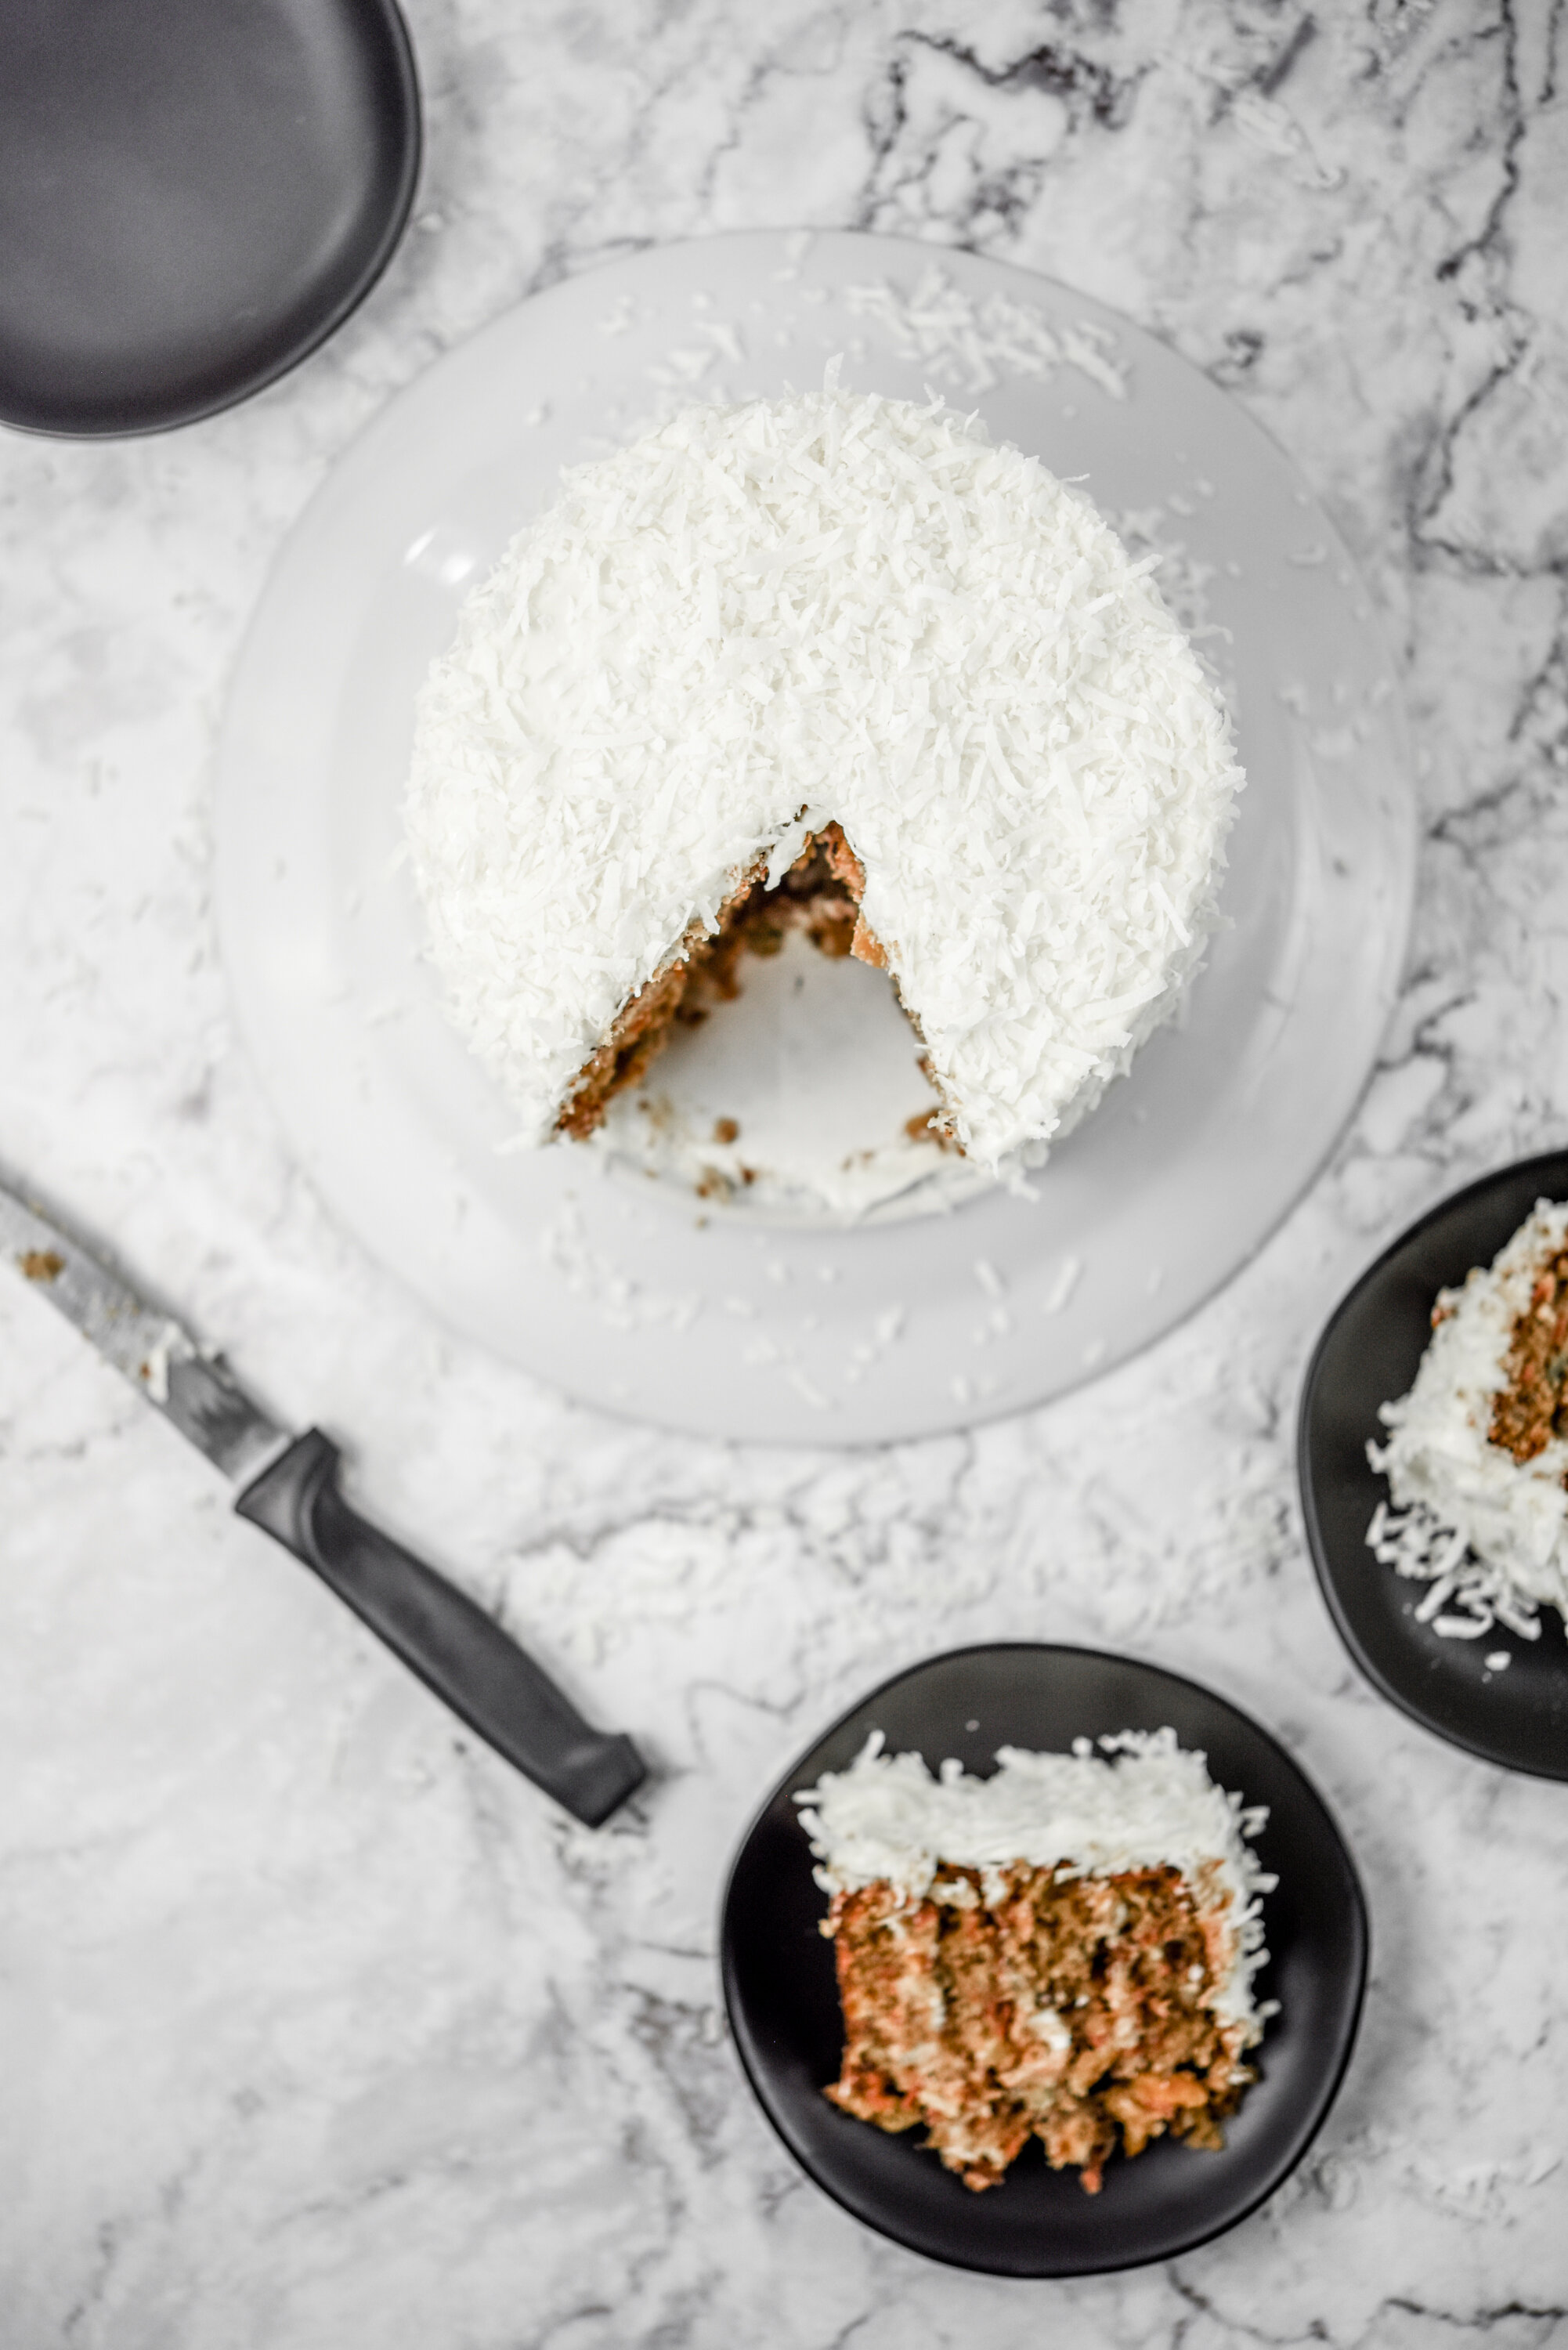 Carrot Cake that became my go to Kitchen Sink Cake. Food photography, food styling, and prop styling, by Megan Crist.